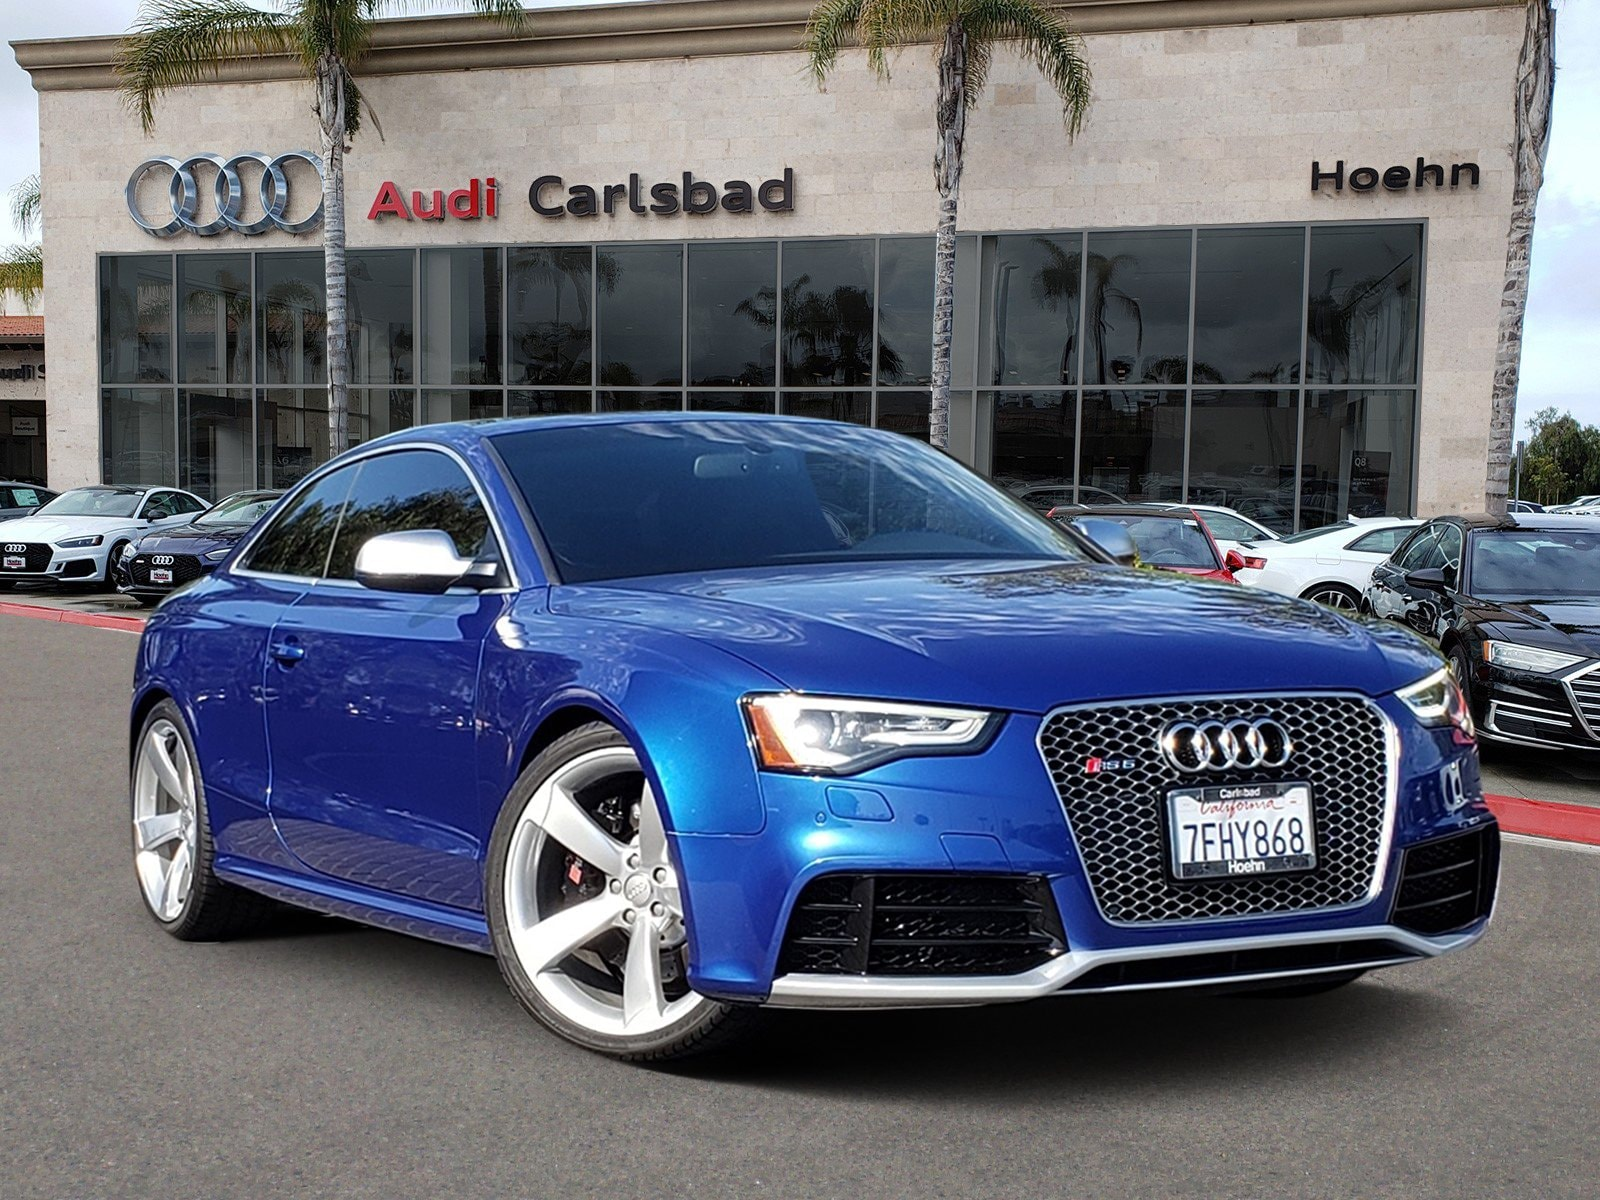 Pre-Owned 2014 Audi RS 5 4.2 CP 4.2 (S tronic)